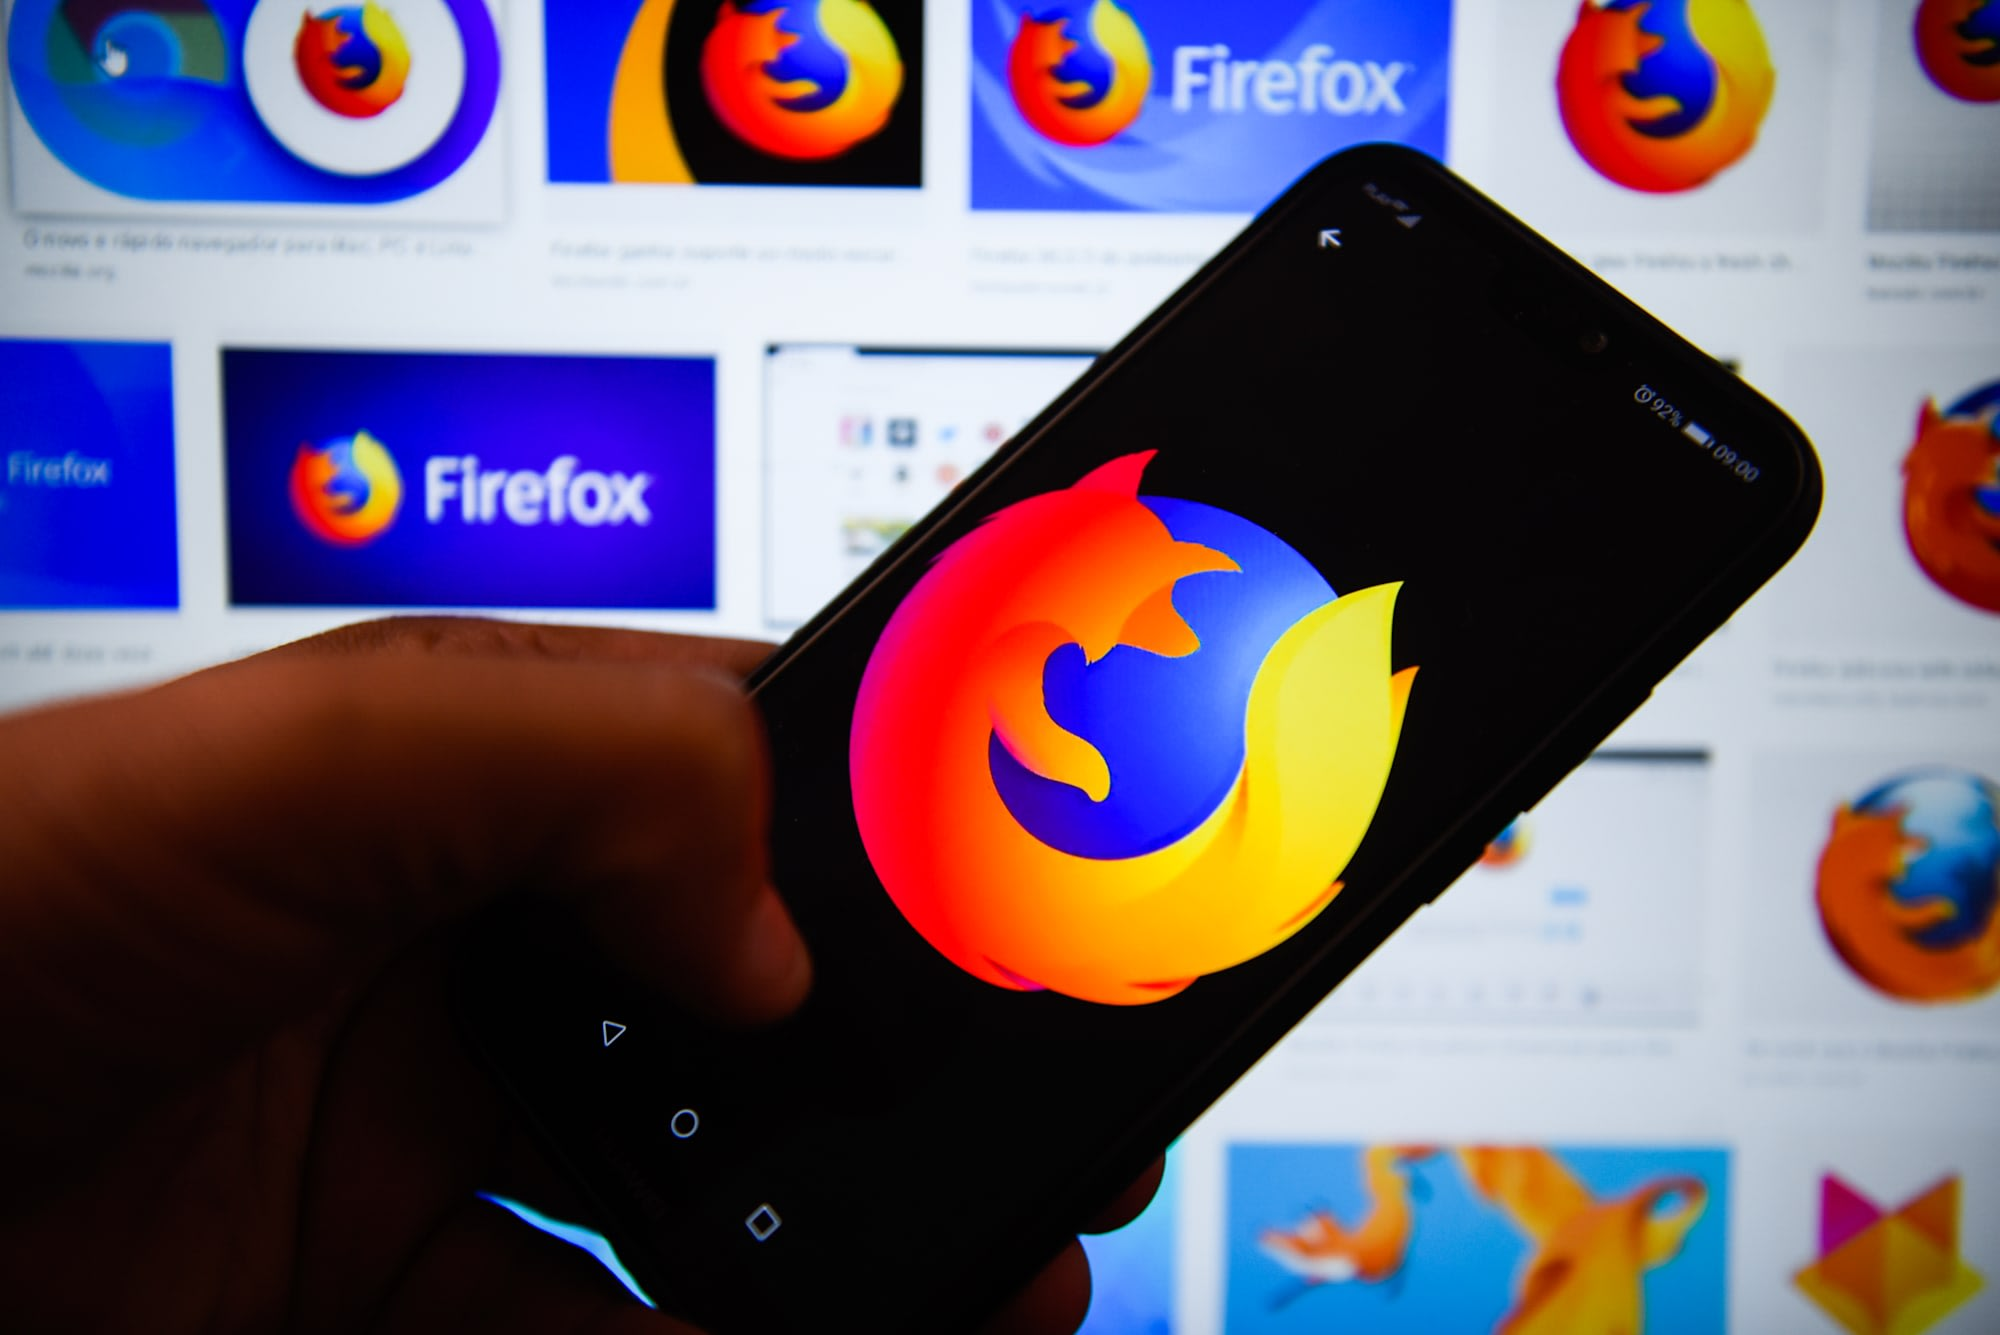 Firefox 69 blocks cookies and crypto-mining tracking by default